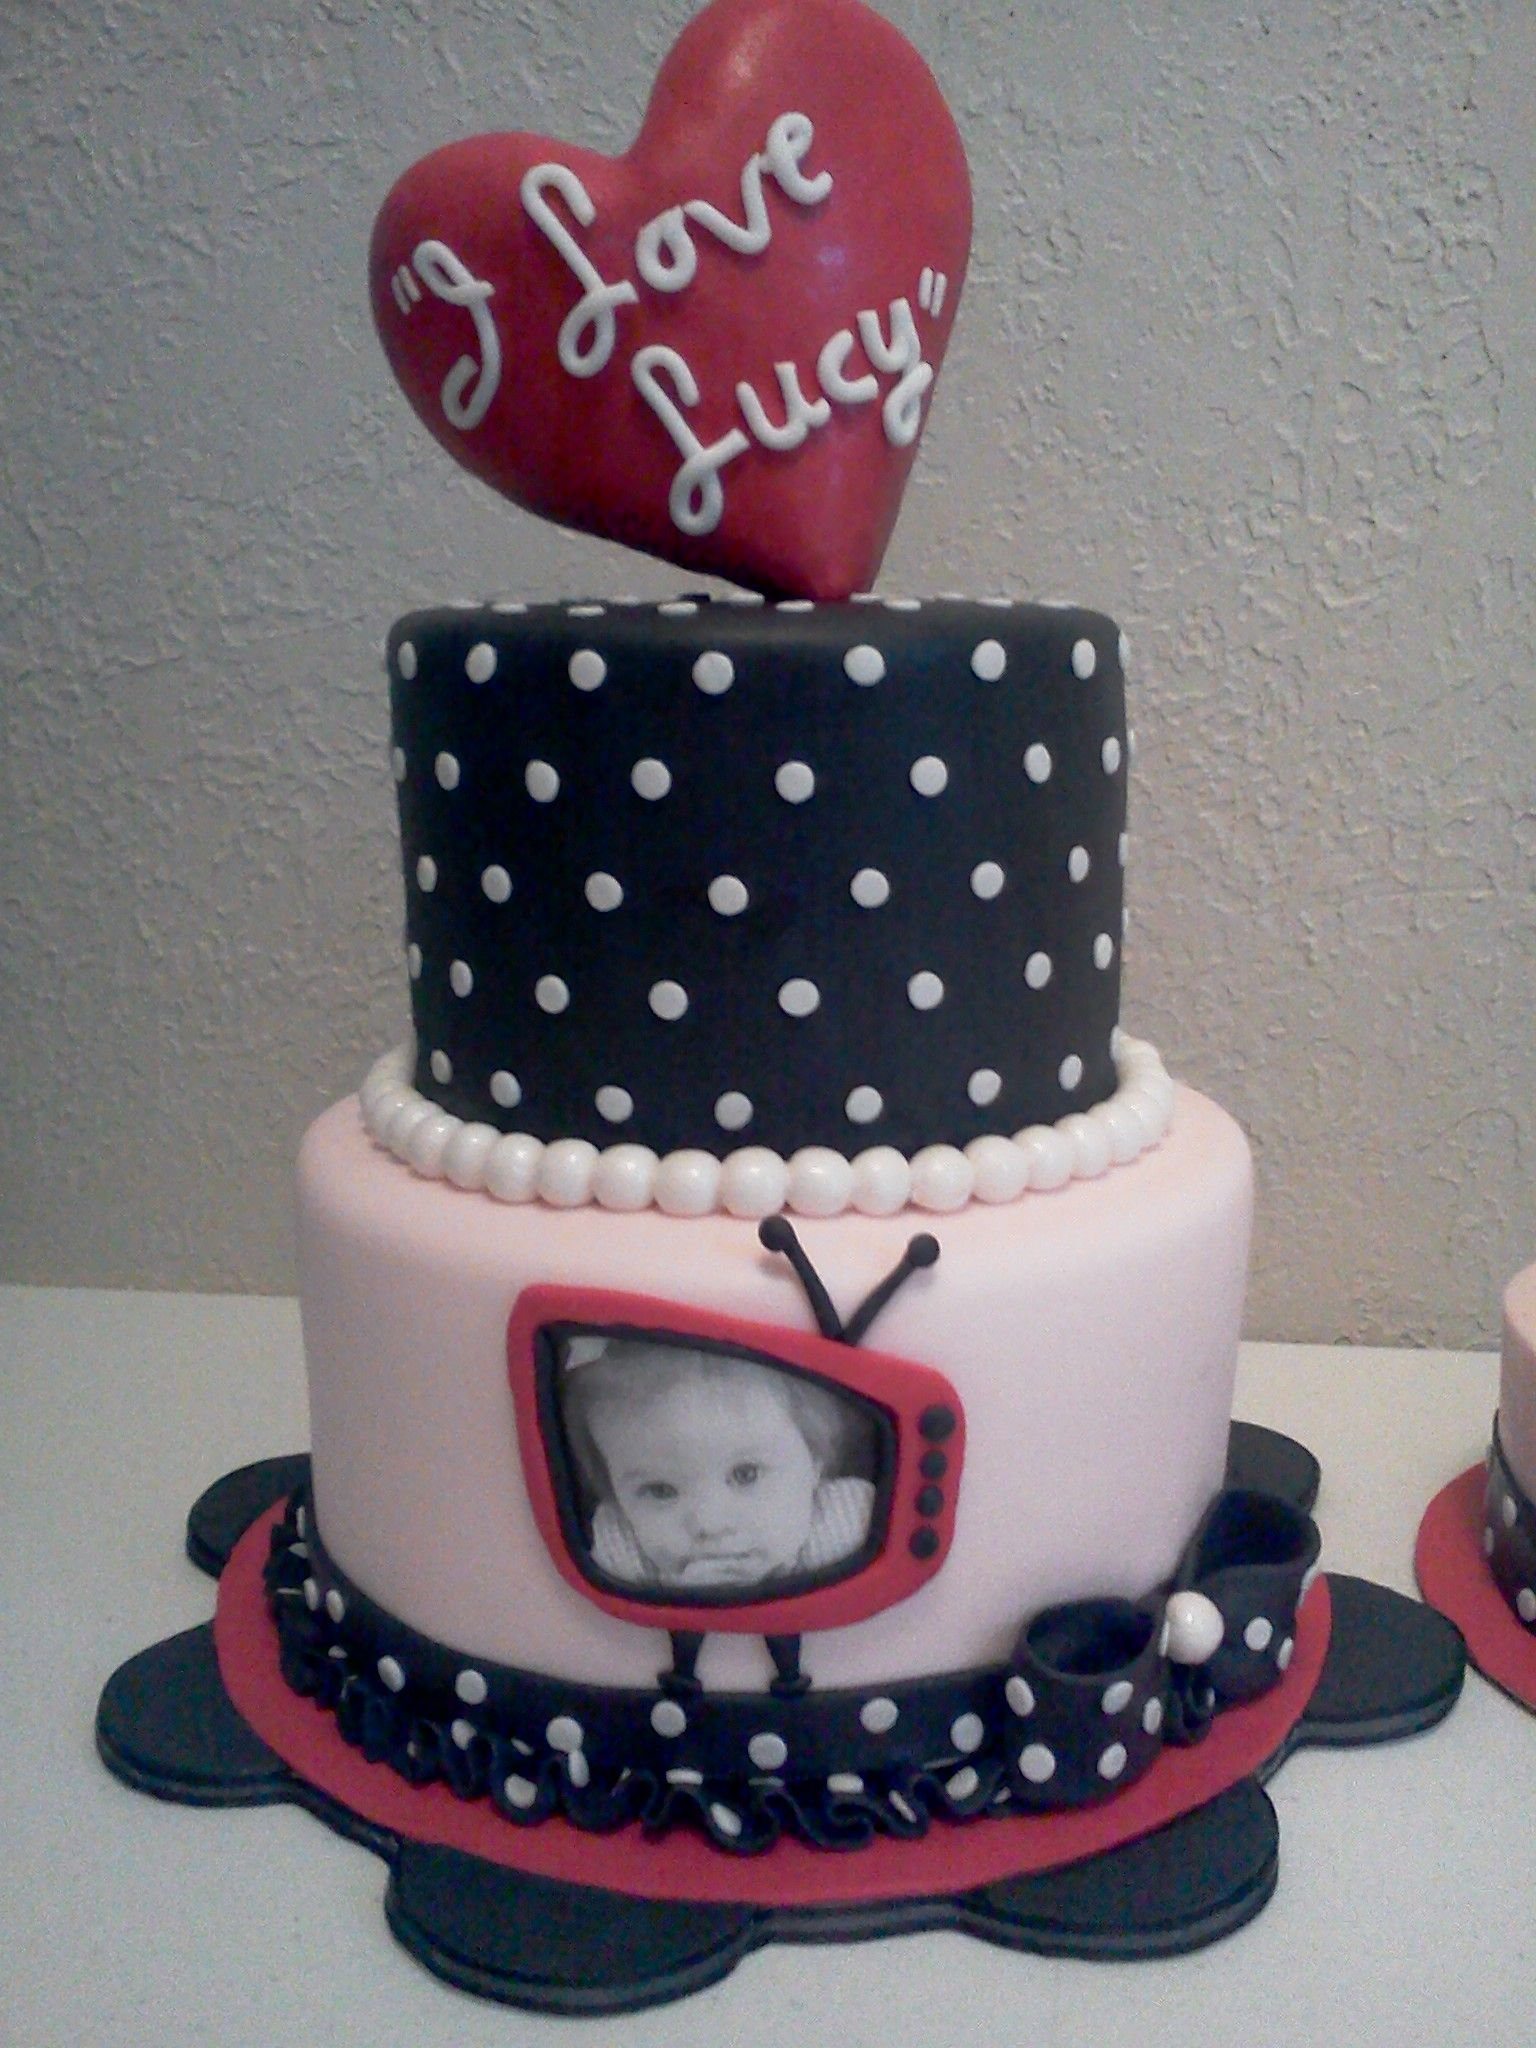 I love lucy cake made for a little girl named lucy